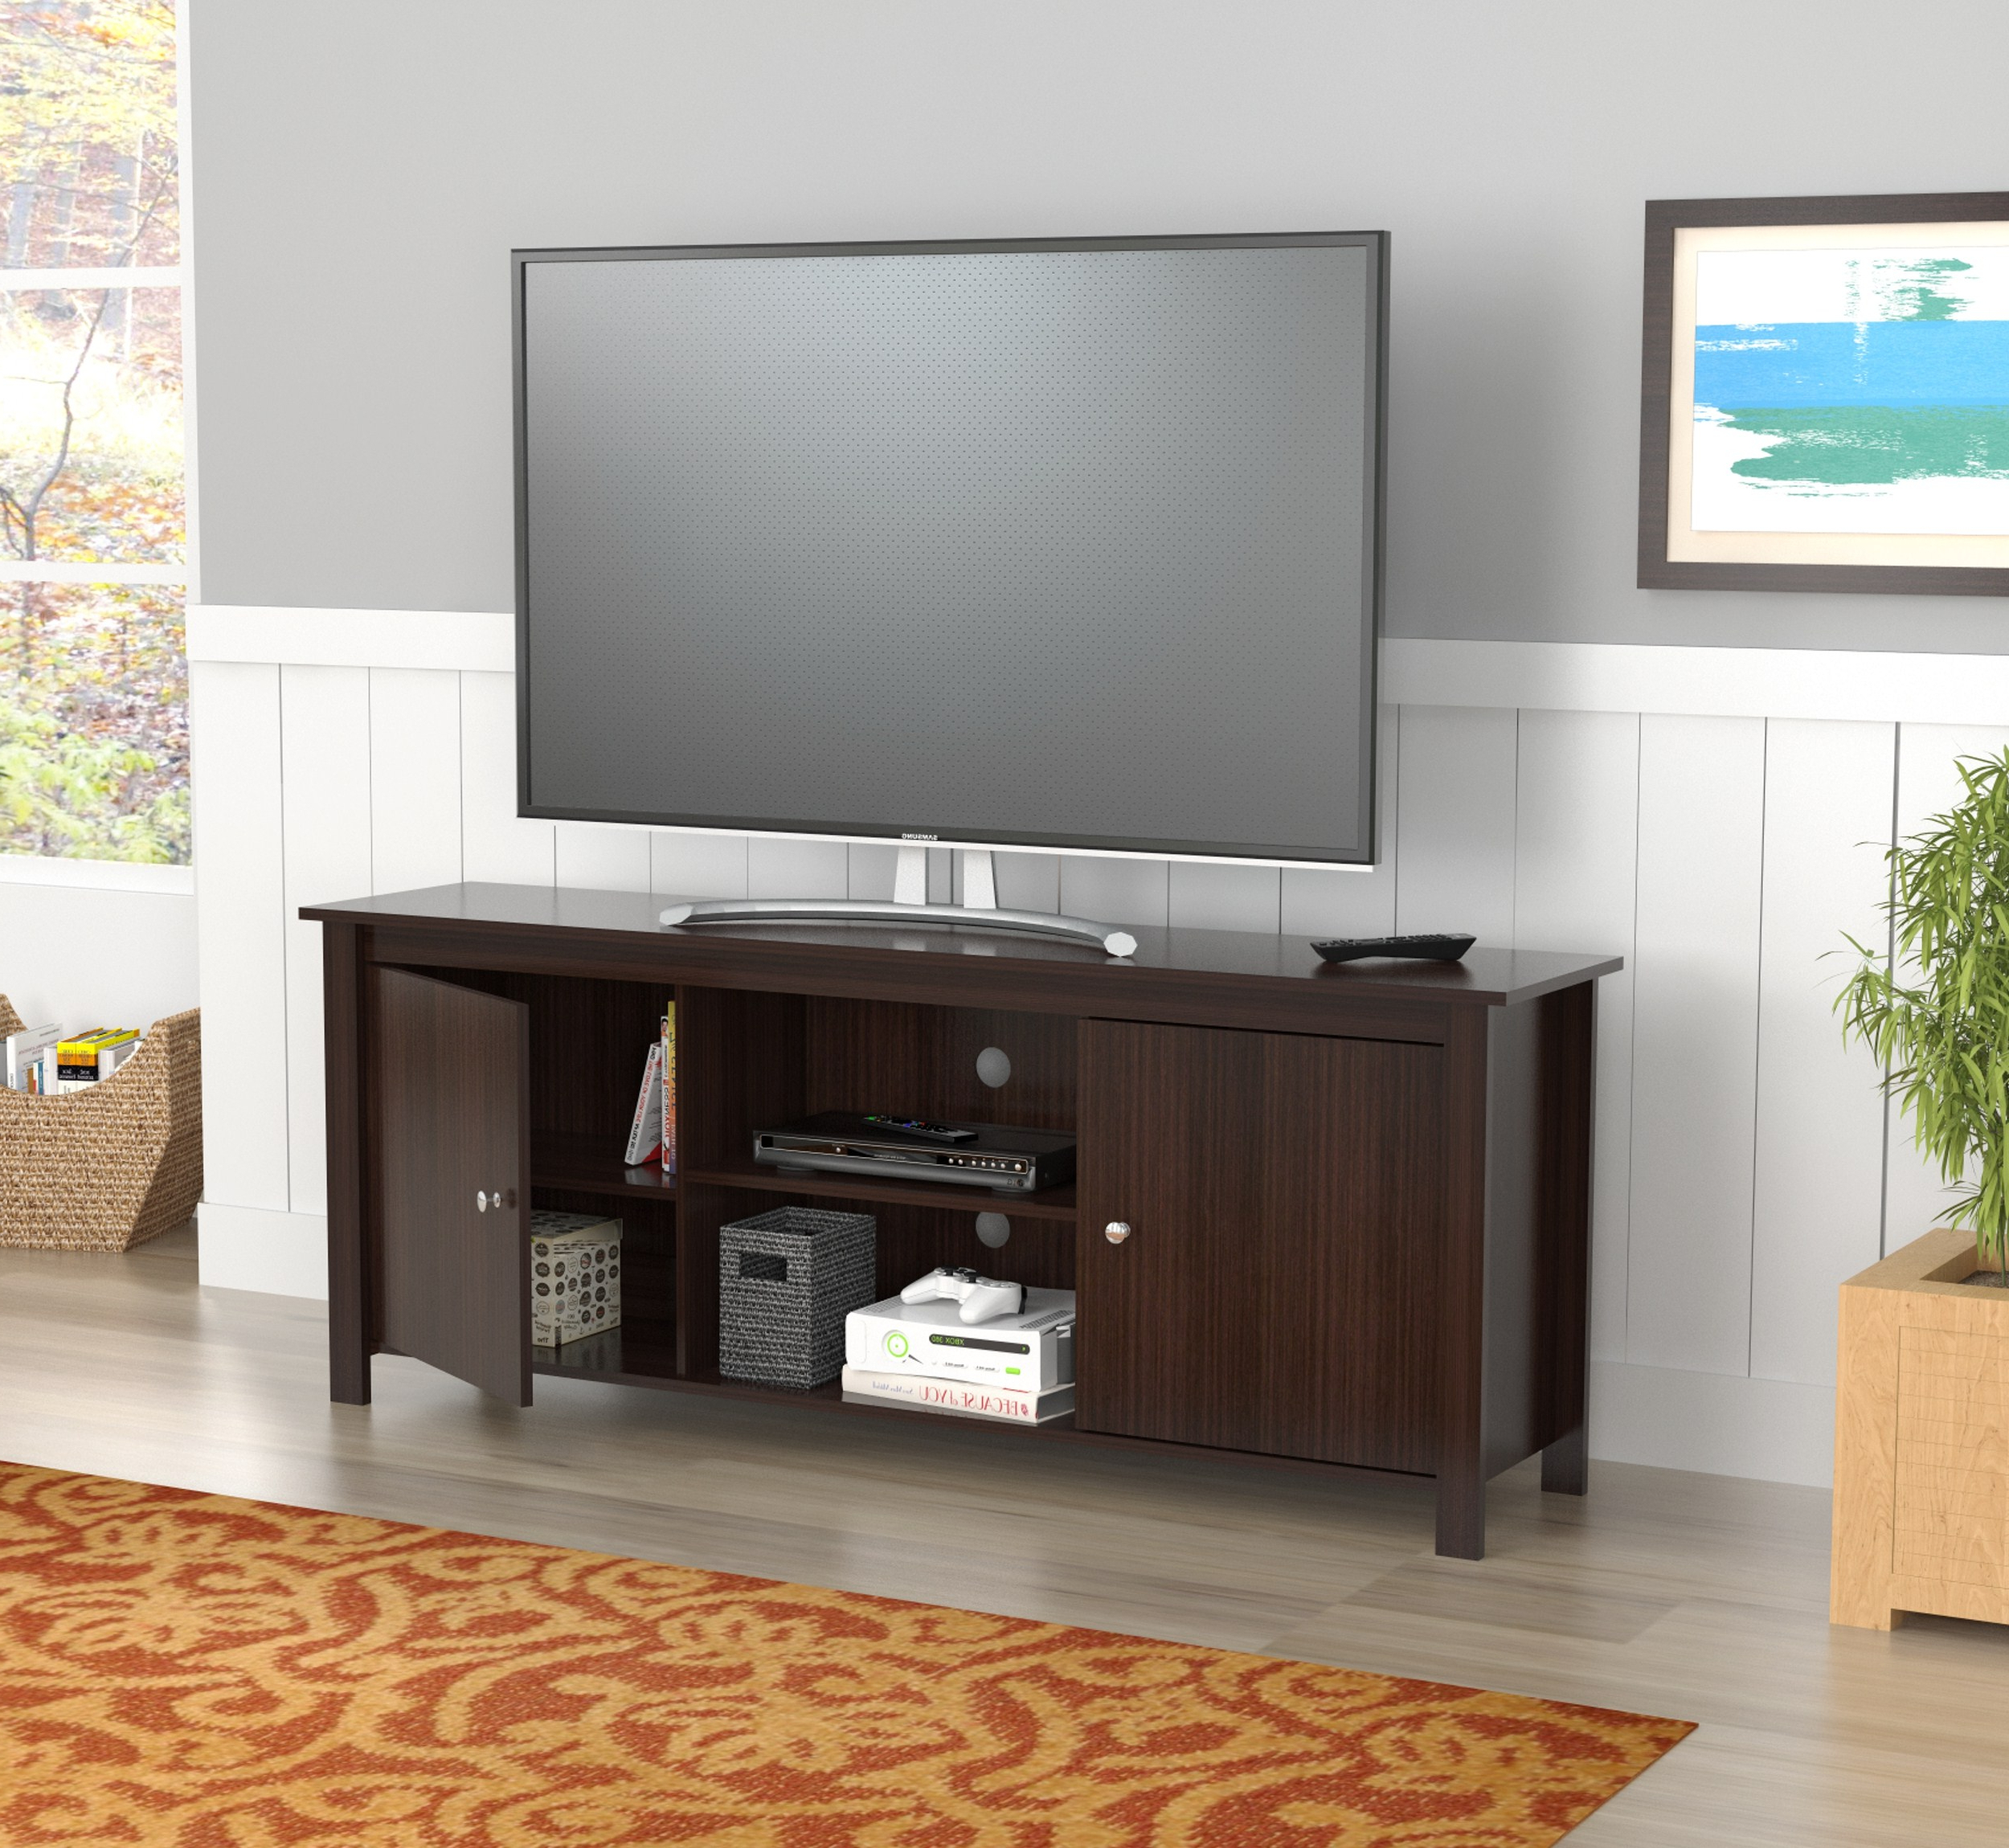 """Lorraine Tv Stands For Tvs Up To 60"""" With Regard To Most Recent Inval Contemporary Espresso 60 Inch Tv Stand – Walmart (View 20 of 25)"""